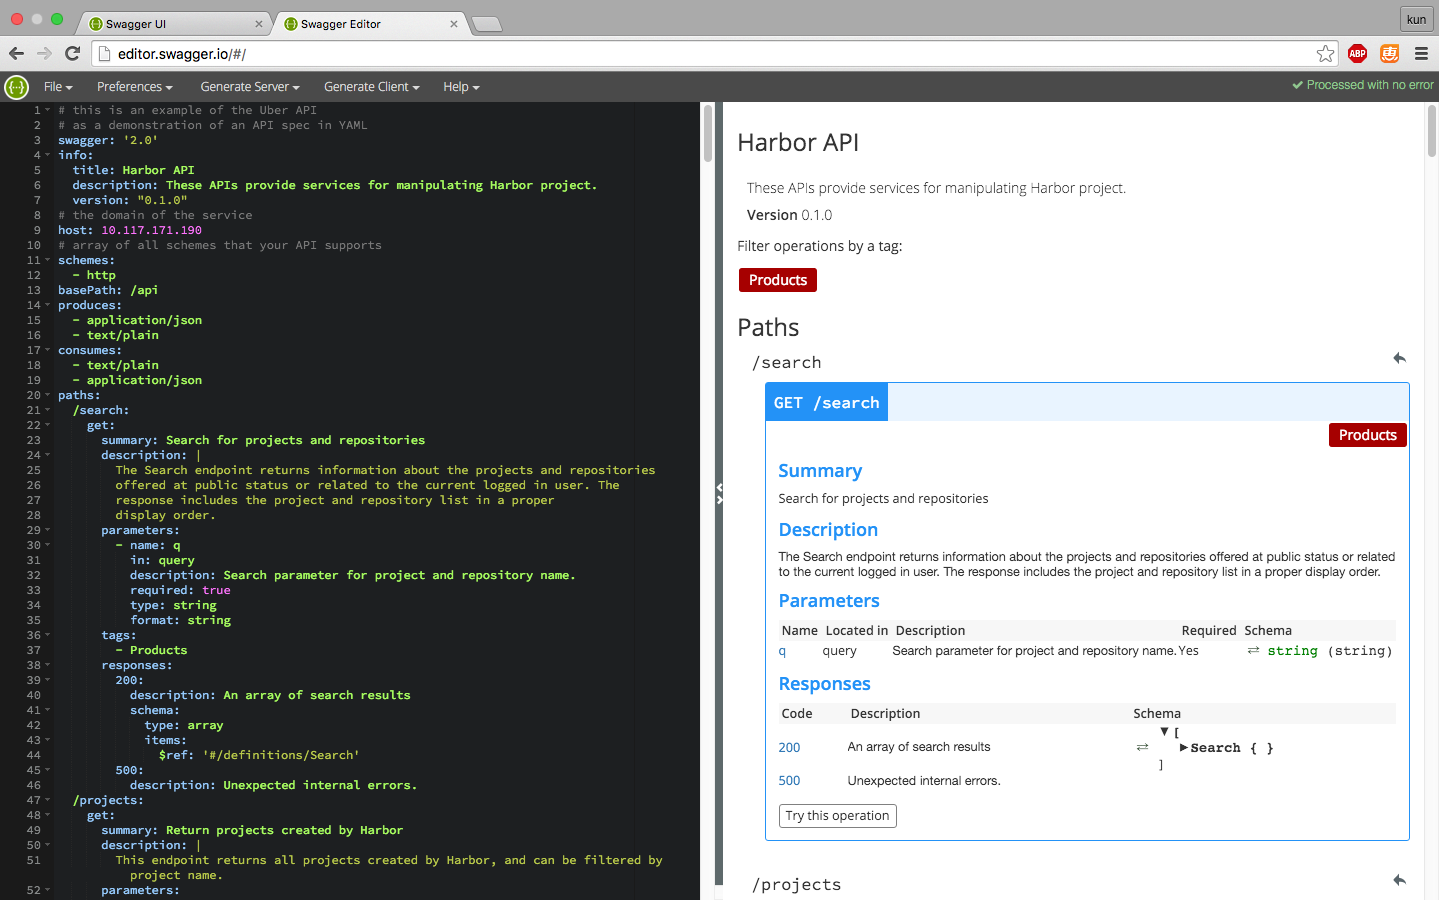 Swagger_Editor_for_Harbor_API.png